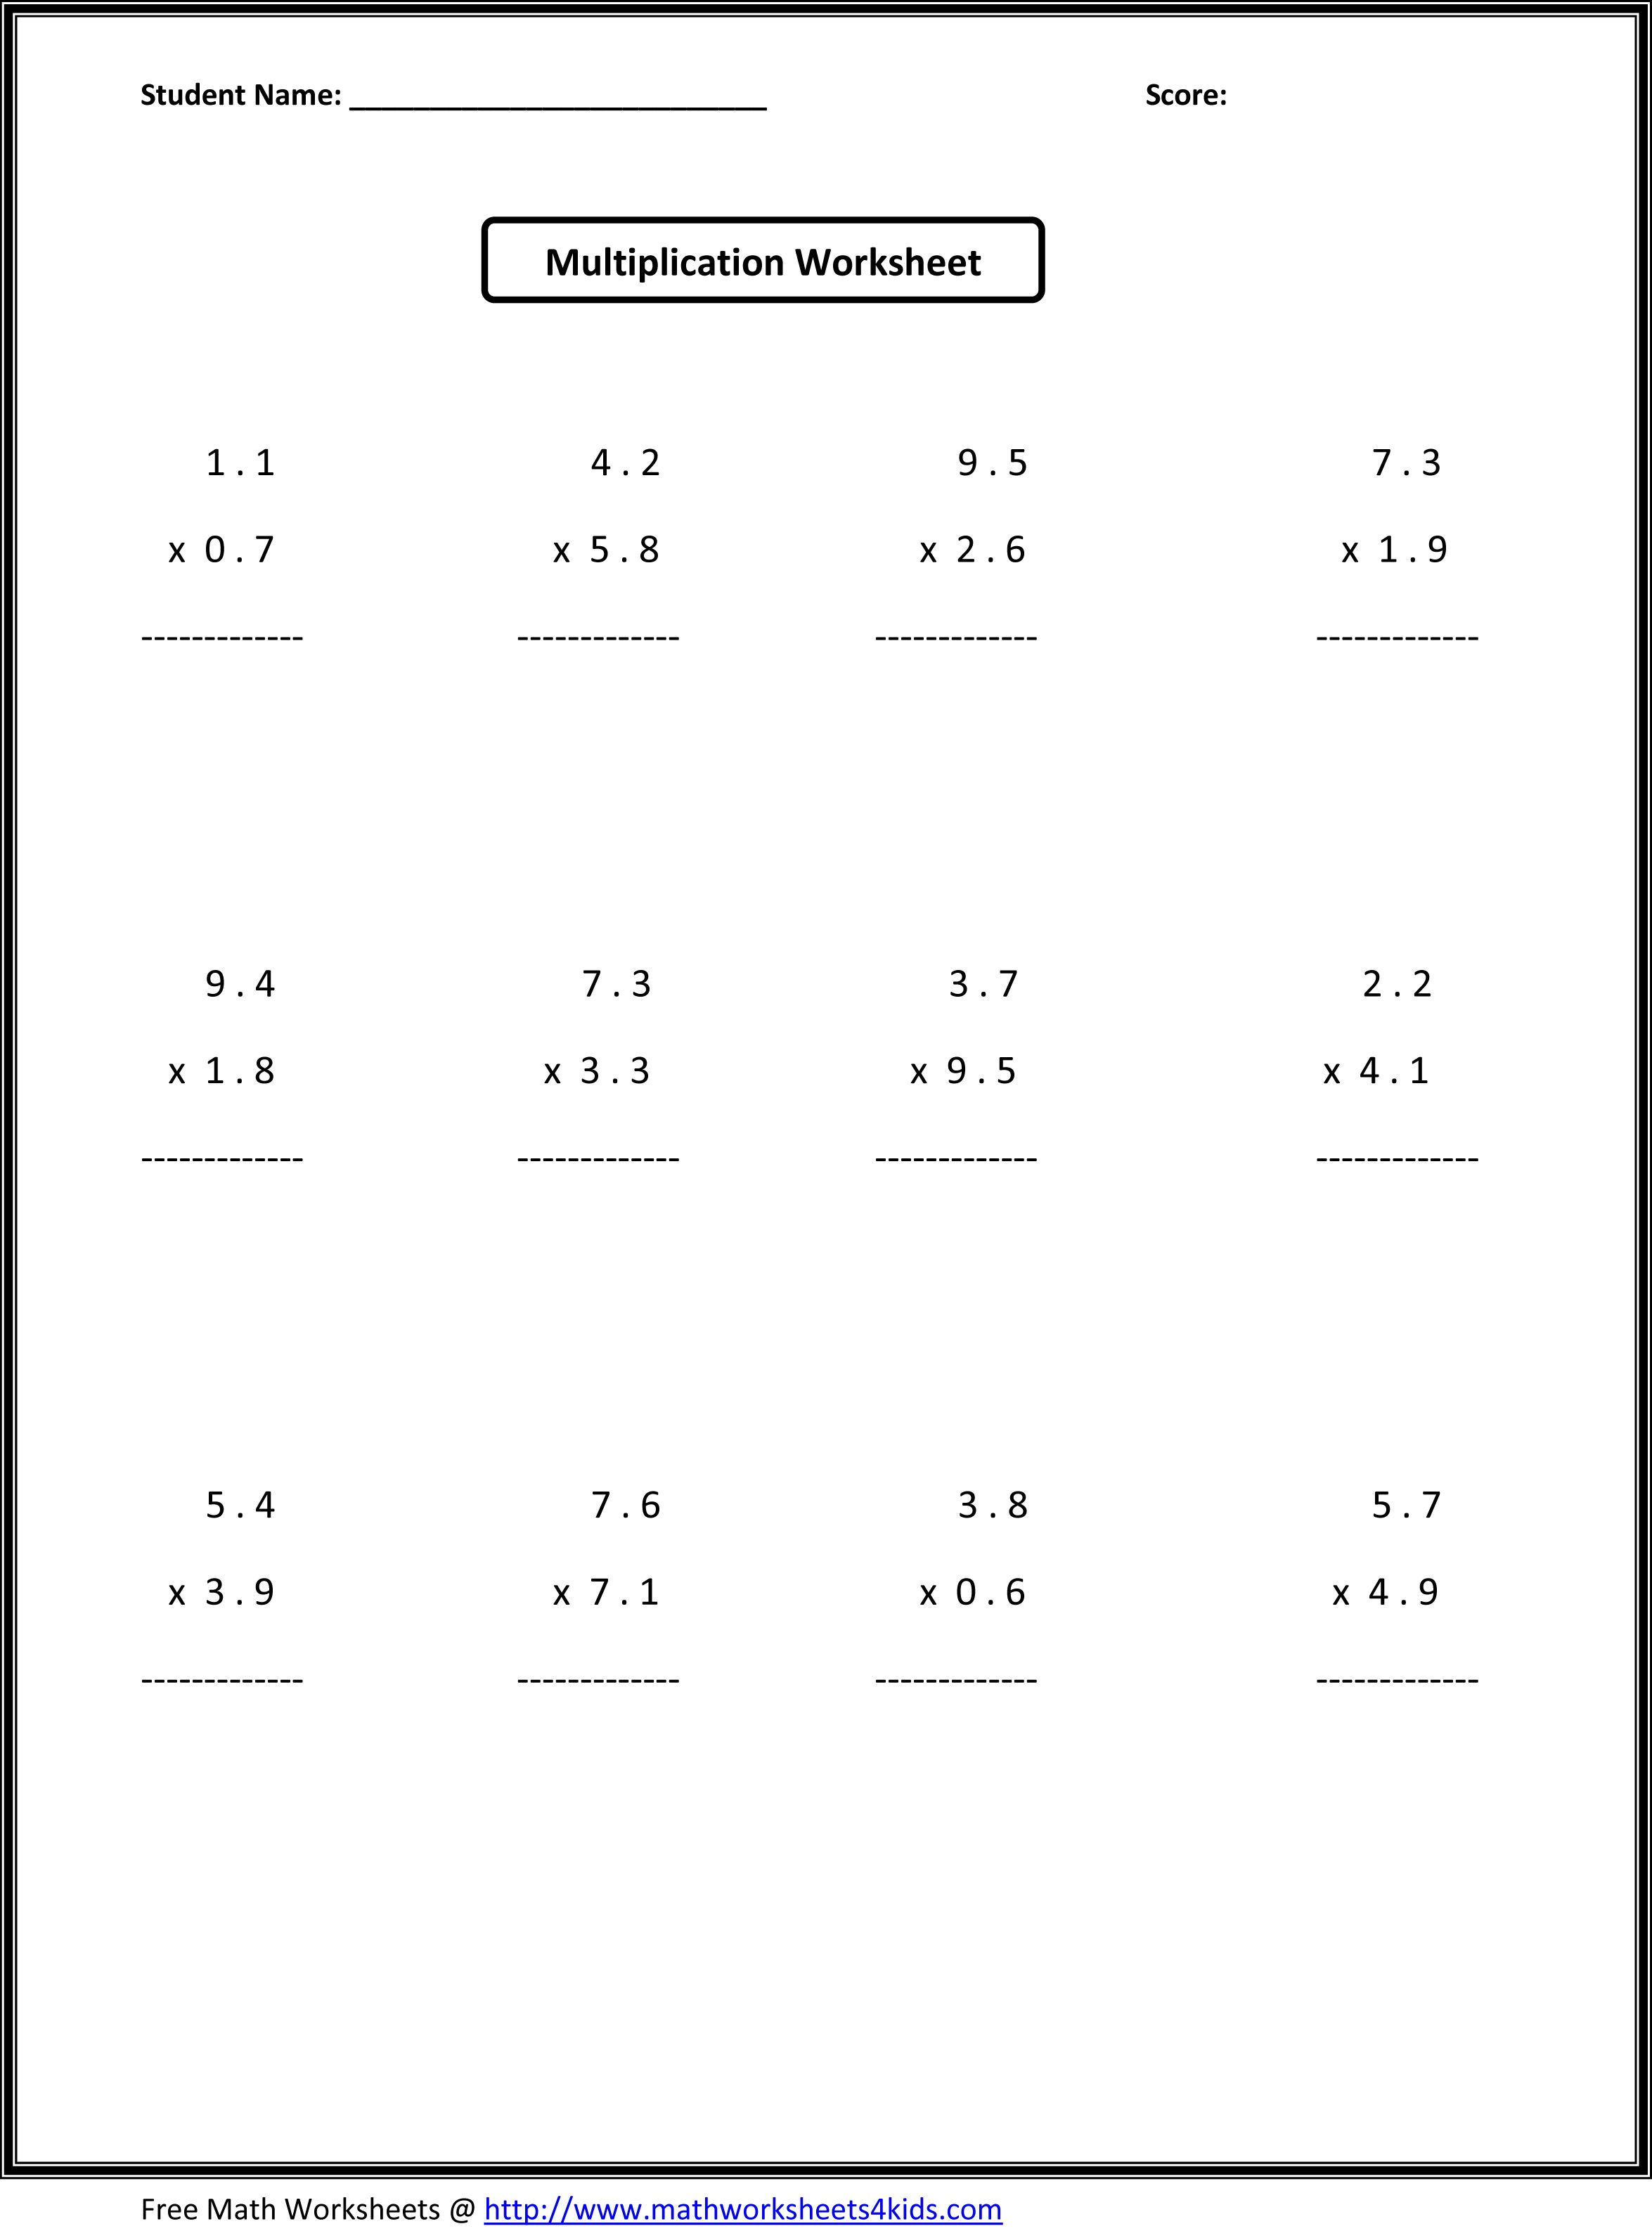 Worksheets 7th Grade Math Worksheets Free 7th grade math worksheets value absolute based on basic math